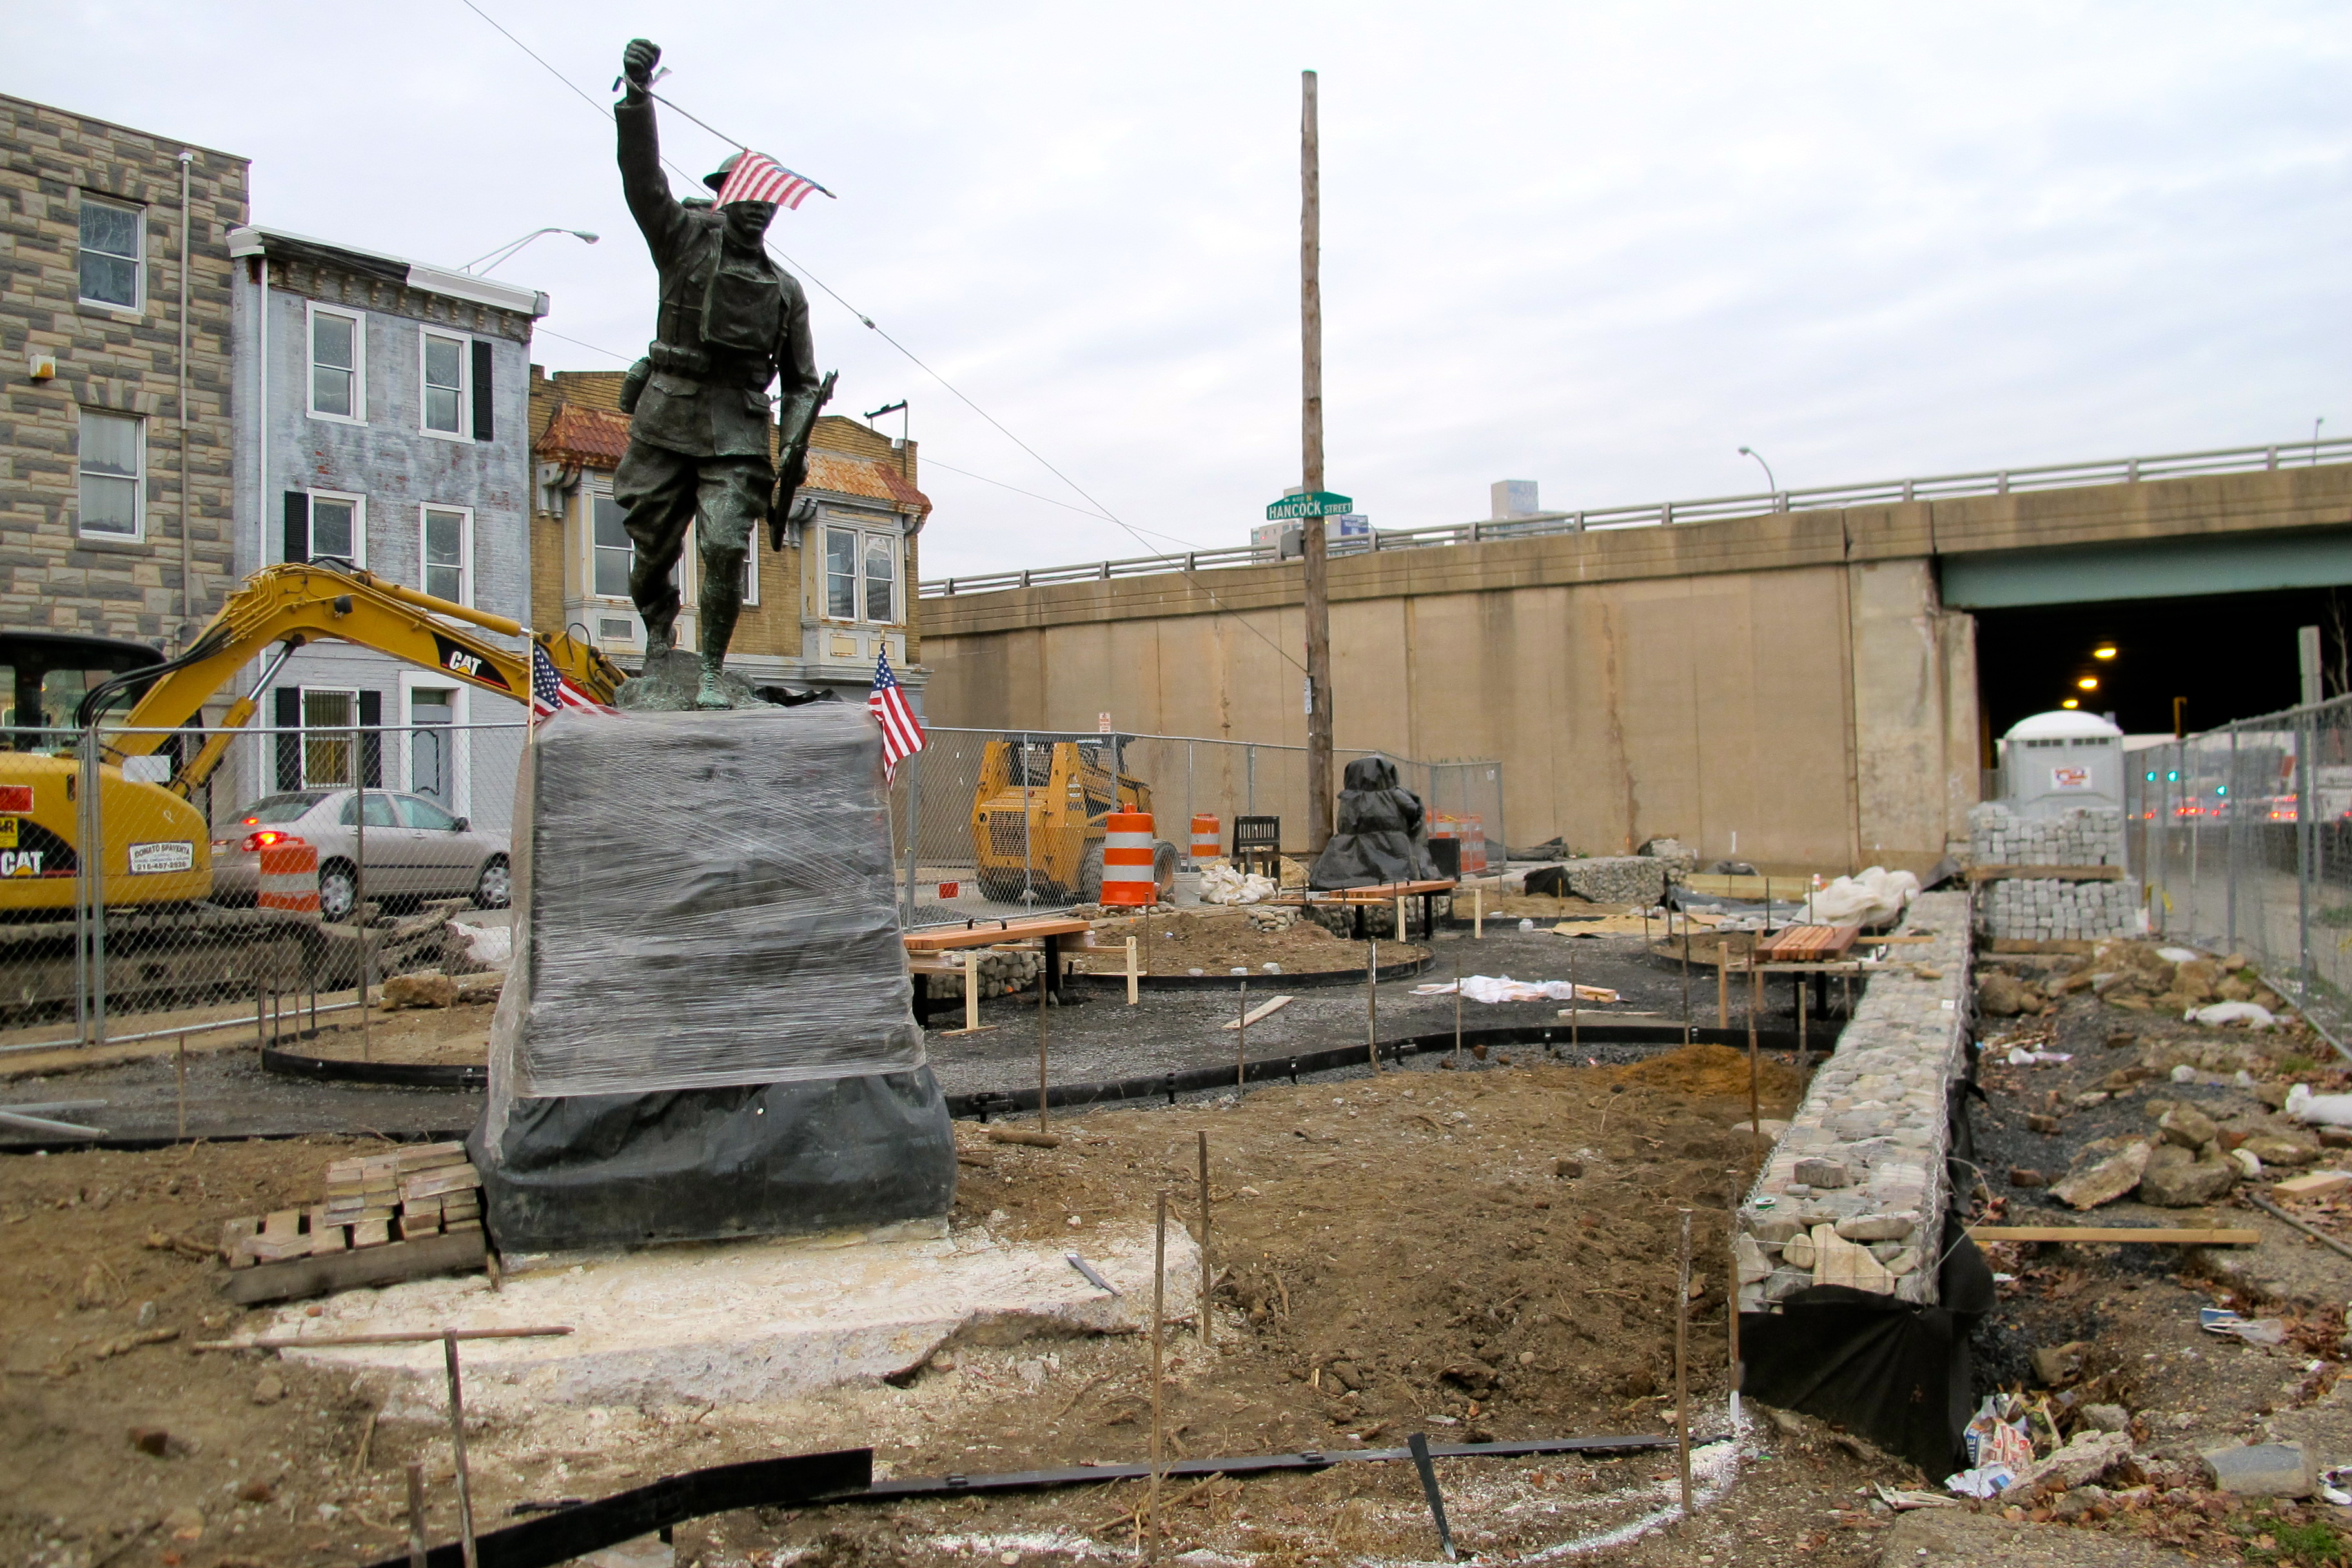 Doughboy Park's new landscape takes shape.